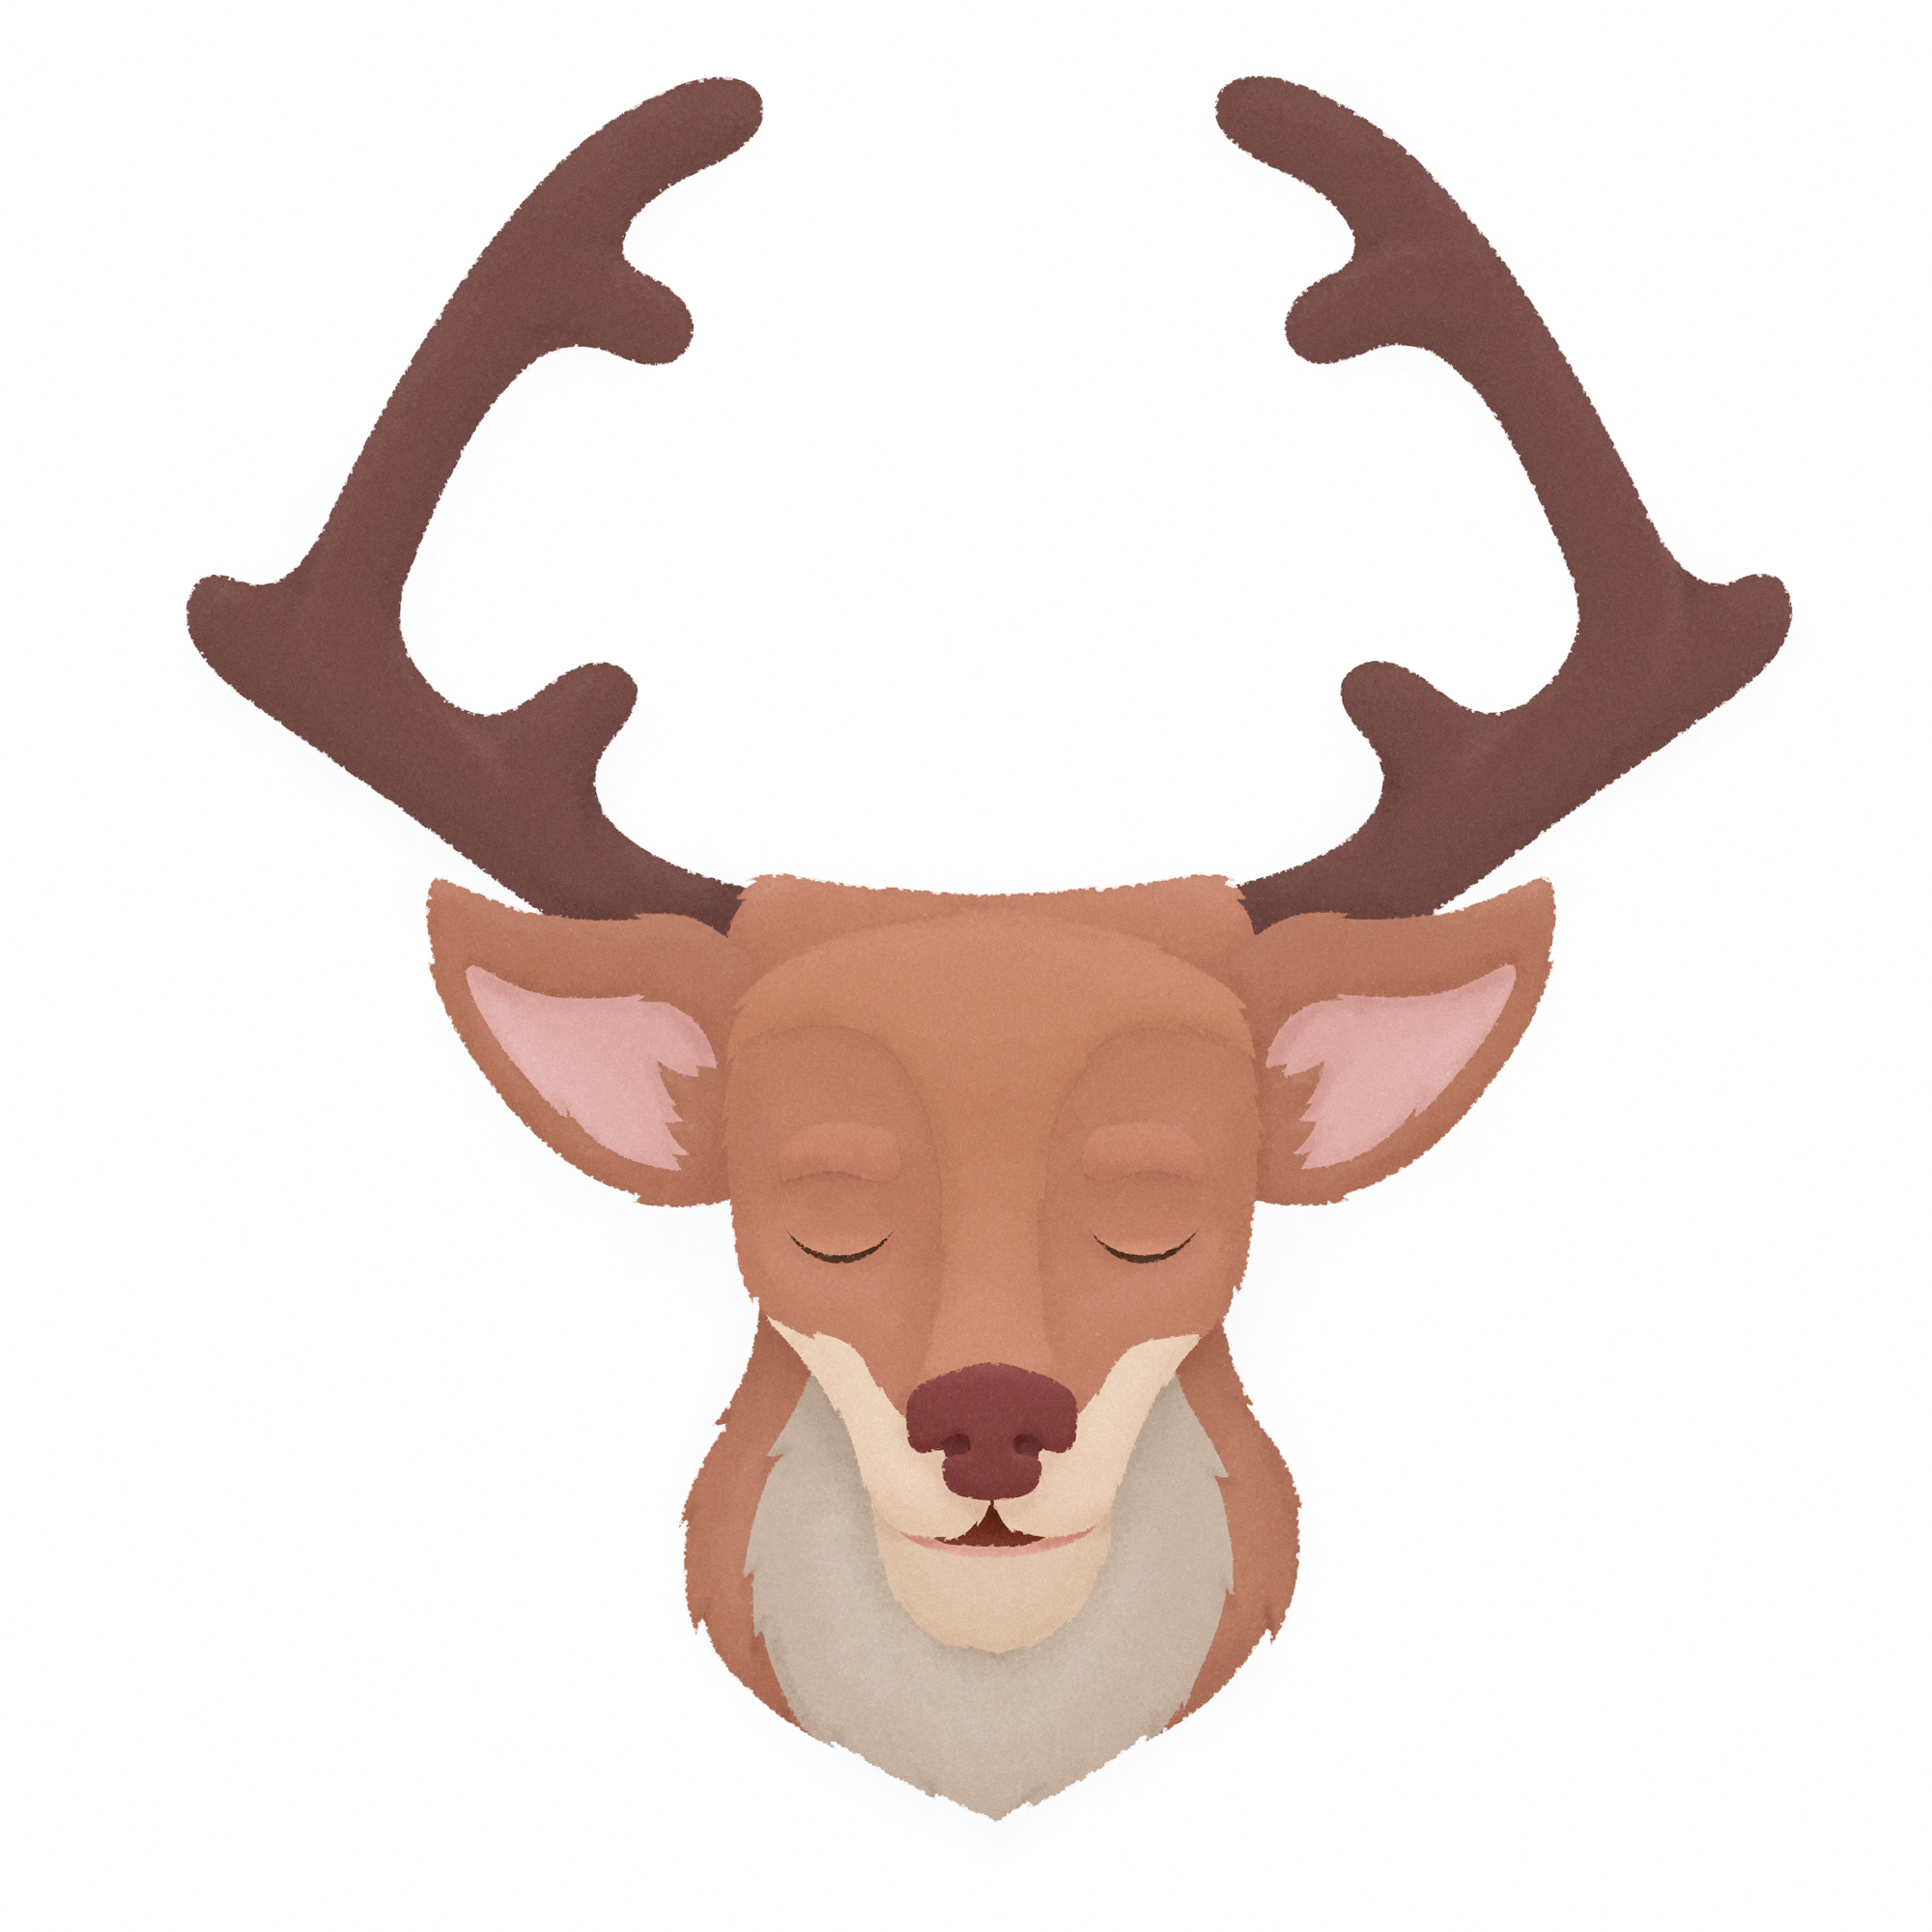 deer_illustration